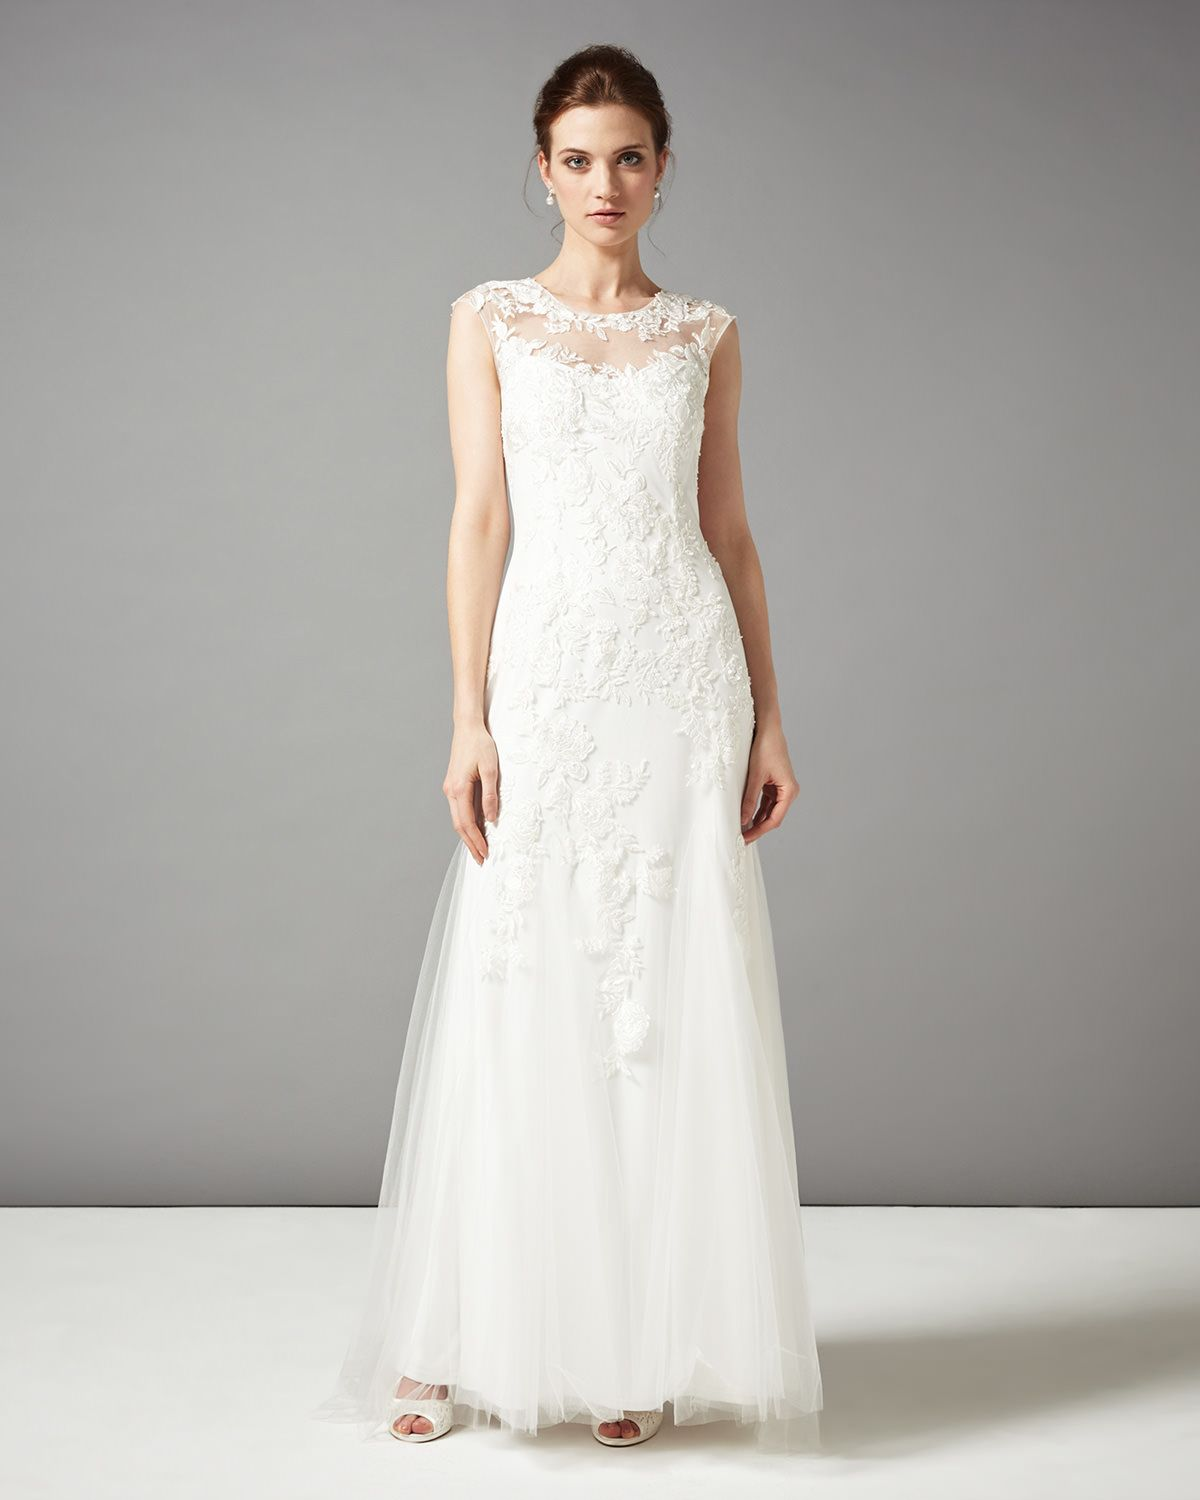 Stunning wedding dresses  A stunning wedding dress featuring beautiful floral embroidered mesh